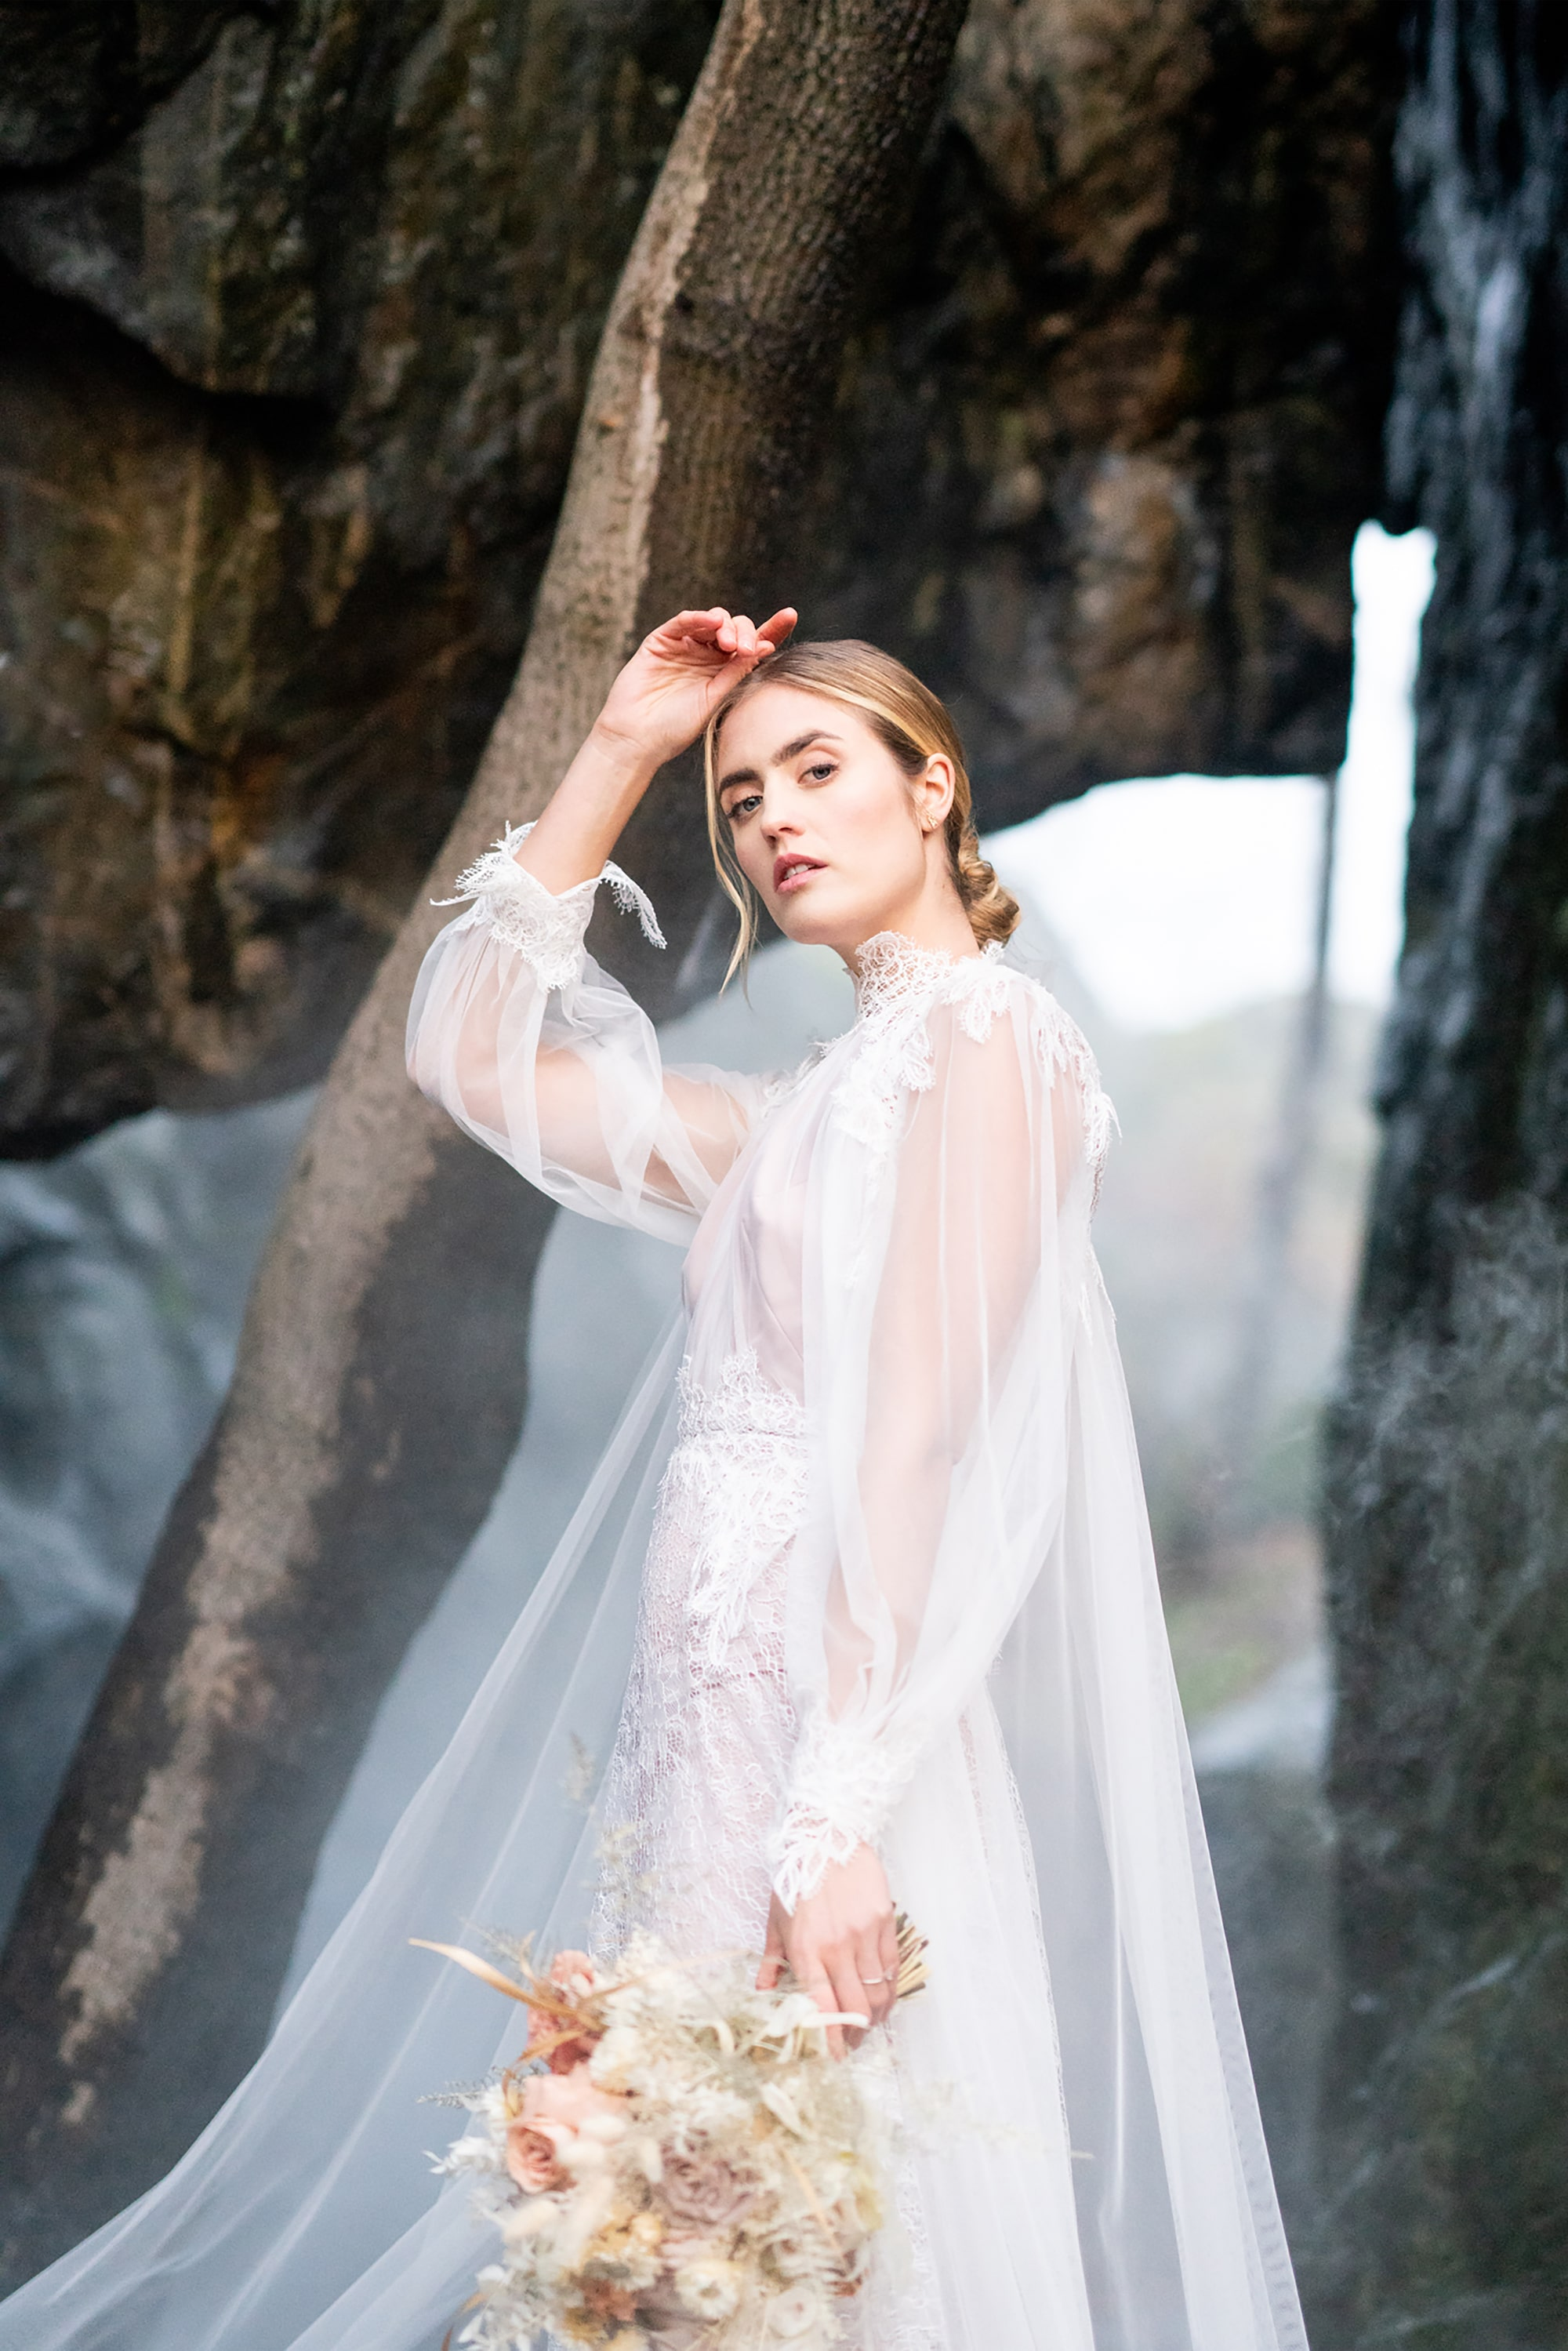 sandra-aberg-sony-alpha-7r3-bride-in-a-white-laced-gown-stands-in-a-forest-atmosphere